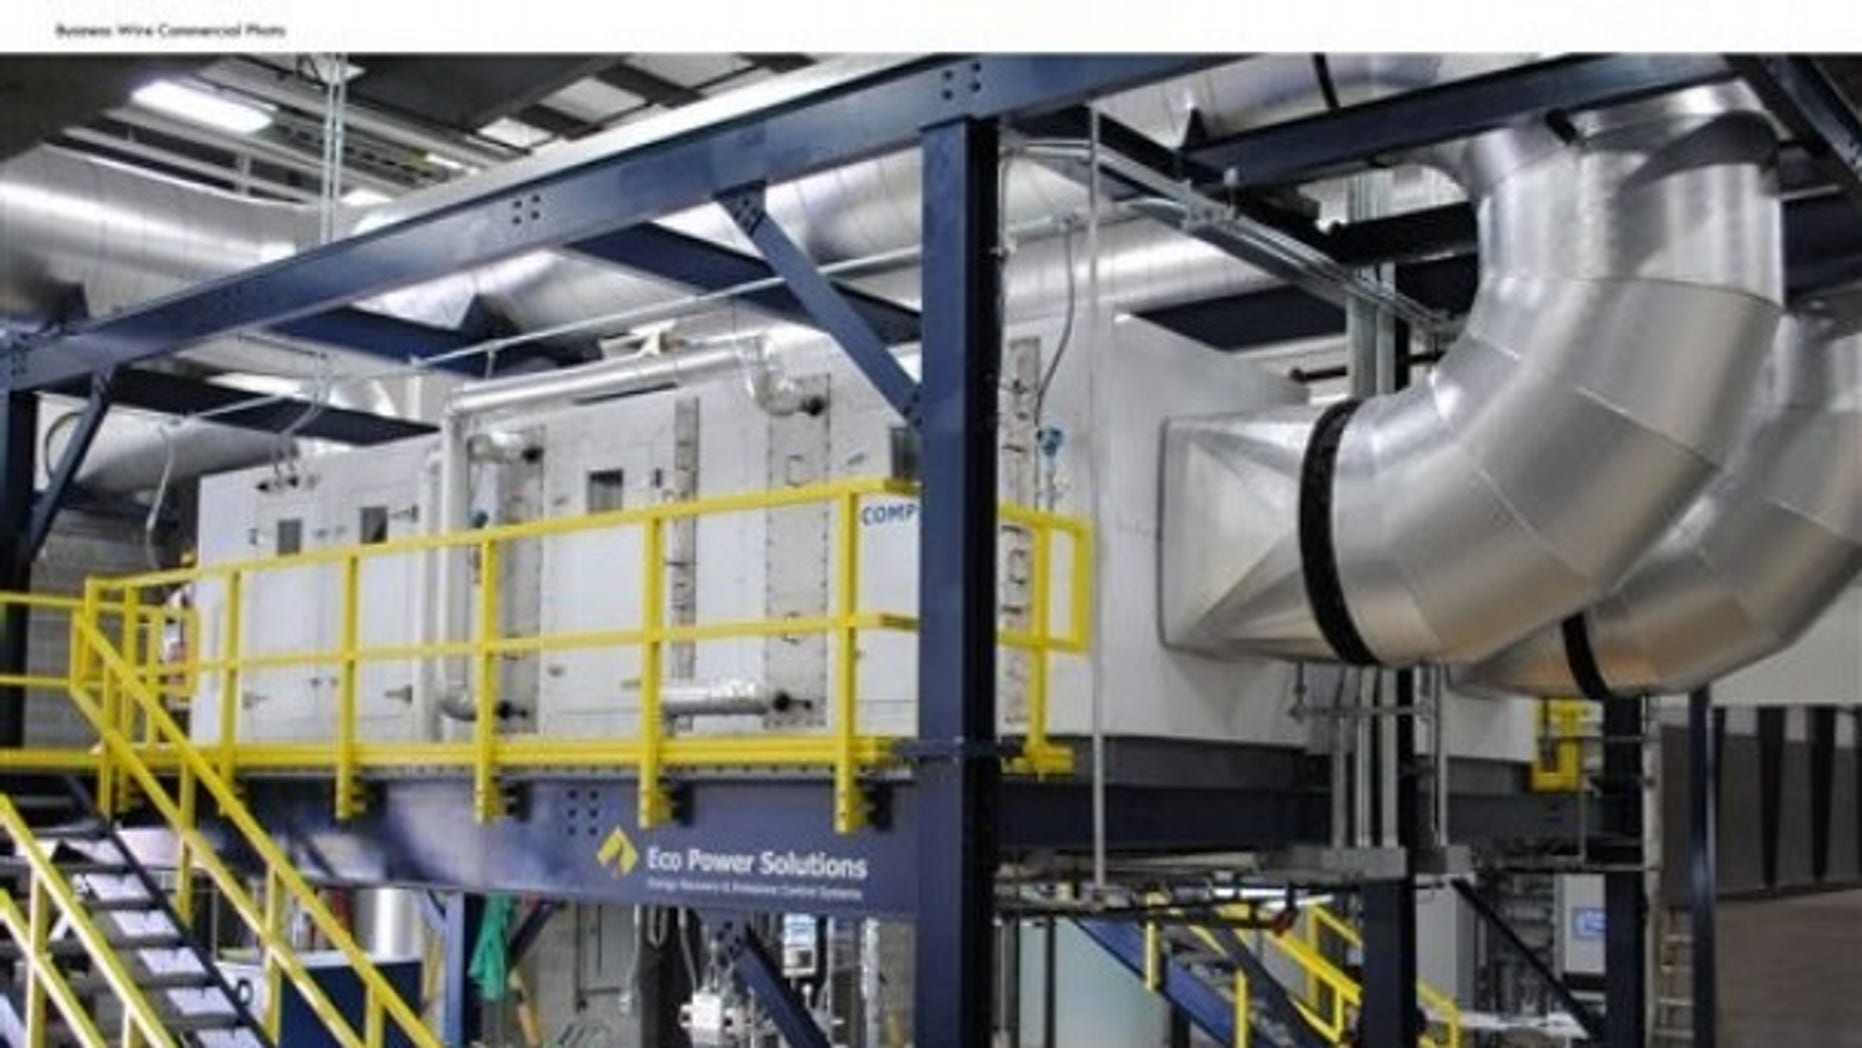 COMPLY 2000 - Multi-Pollutant Emission Control System (Photo: Business Wire)